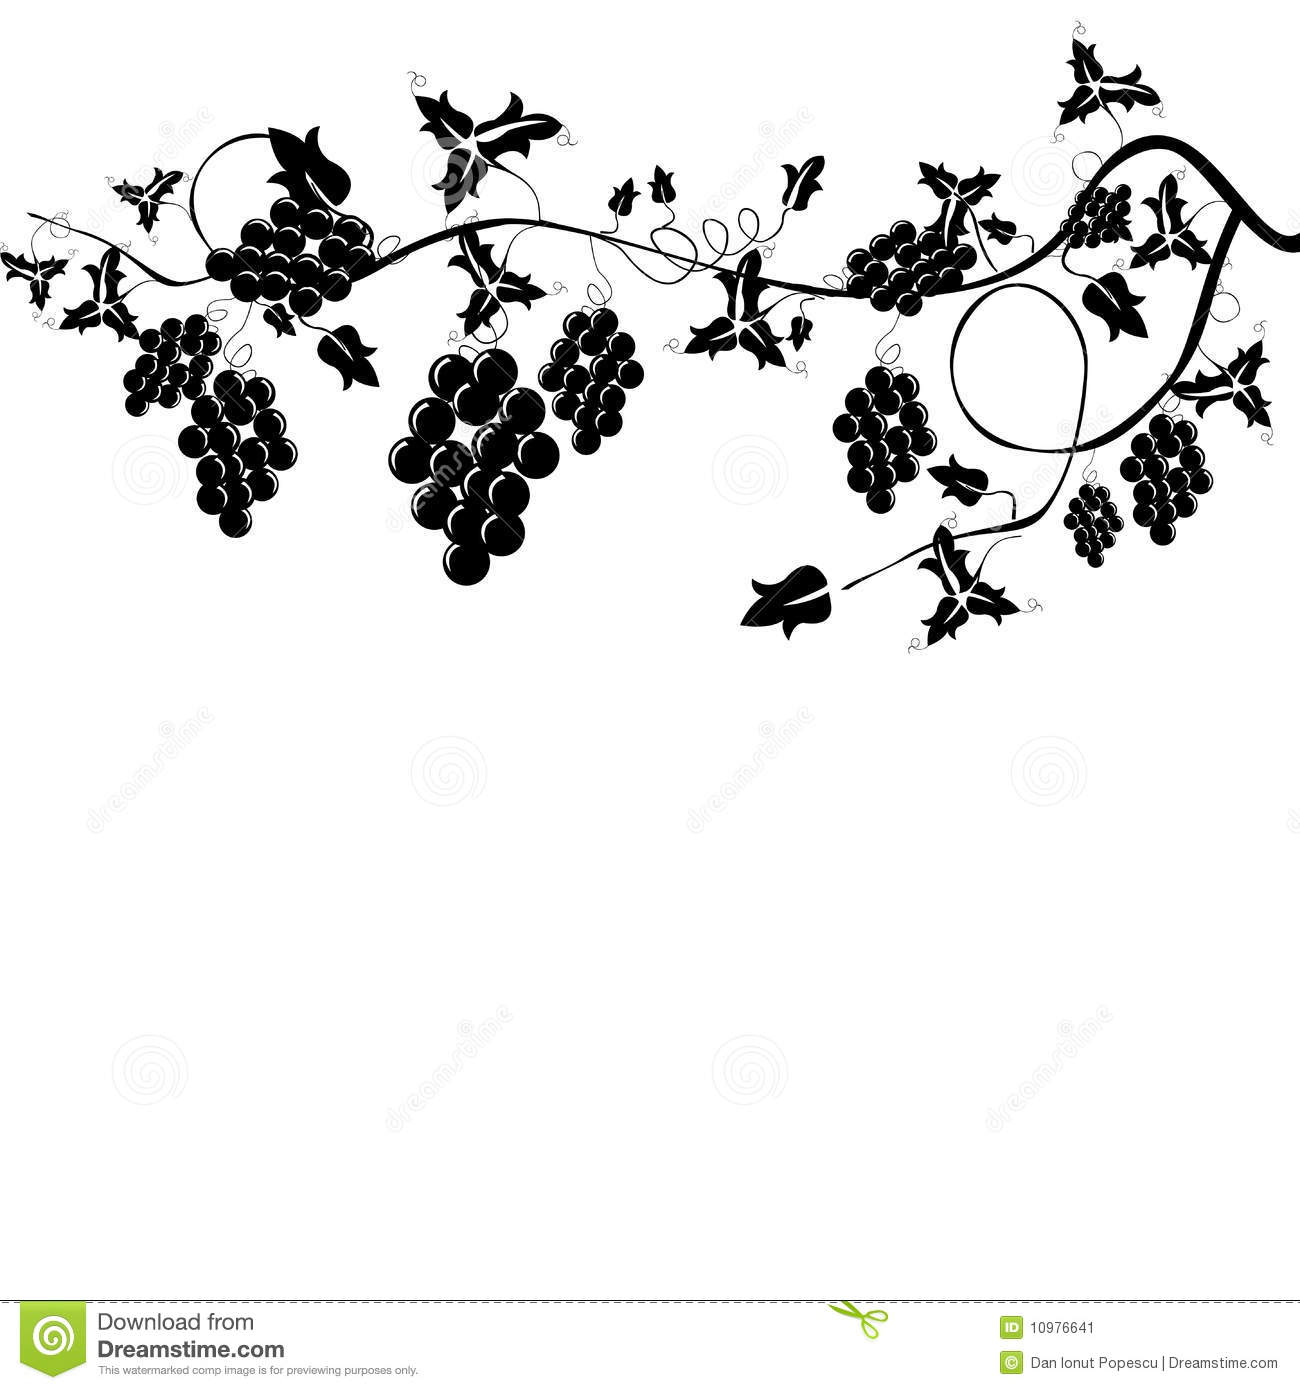 Grapevine Stock Image - Image: 10976641